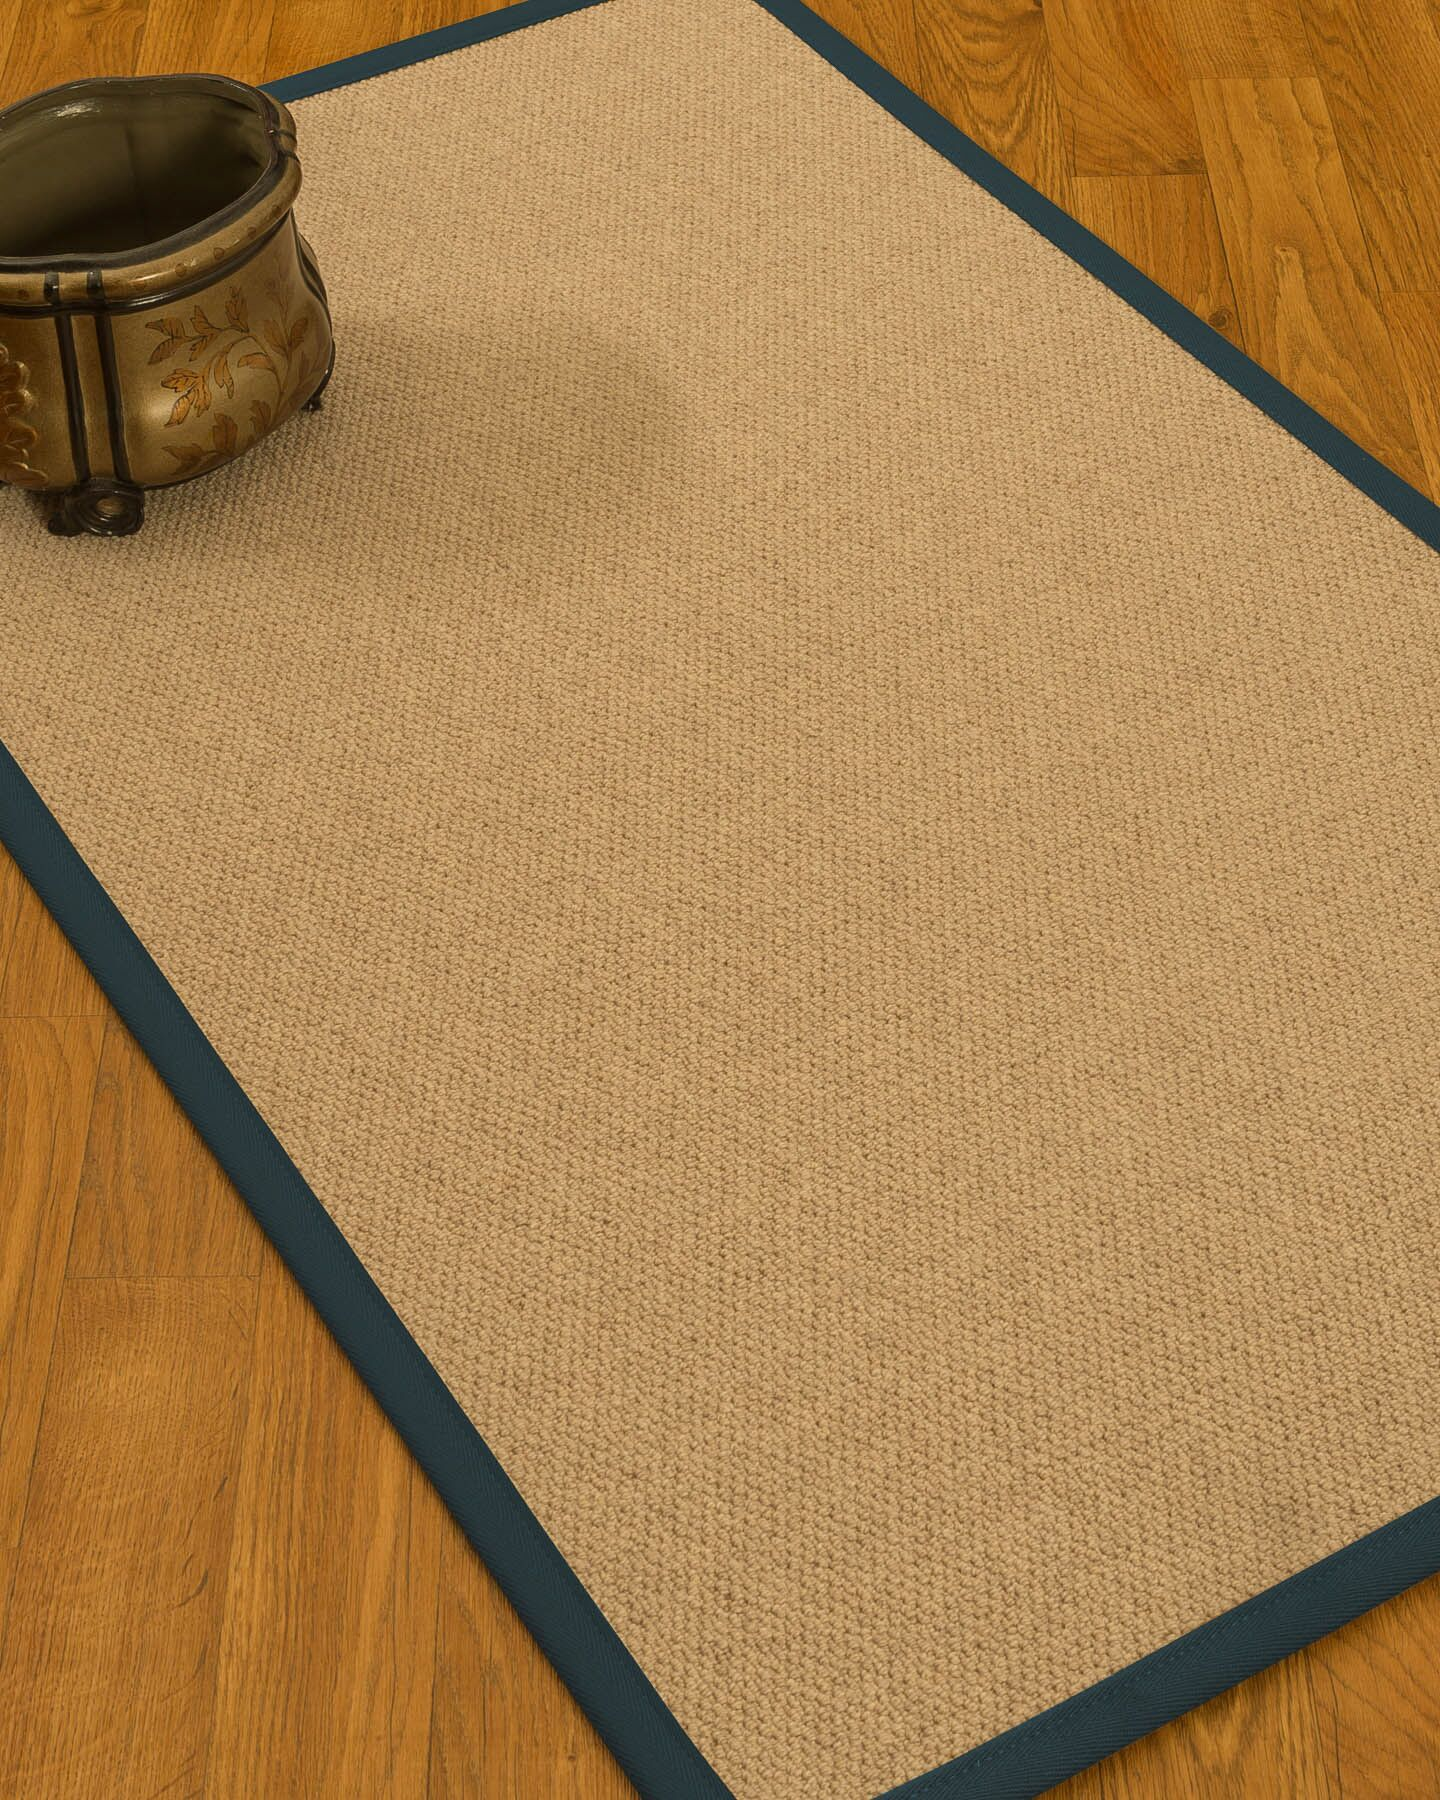 Chavira Border Hand-Woven Wool Beige/Marine Area Rug Rug Size: Rectangle 8' x 10', Rug Pad Included: Yes